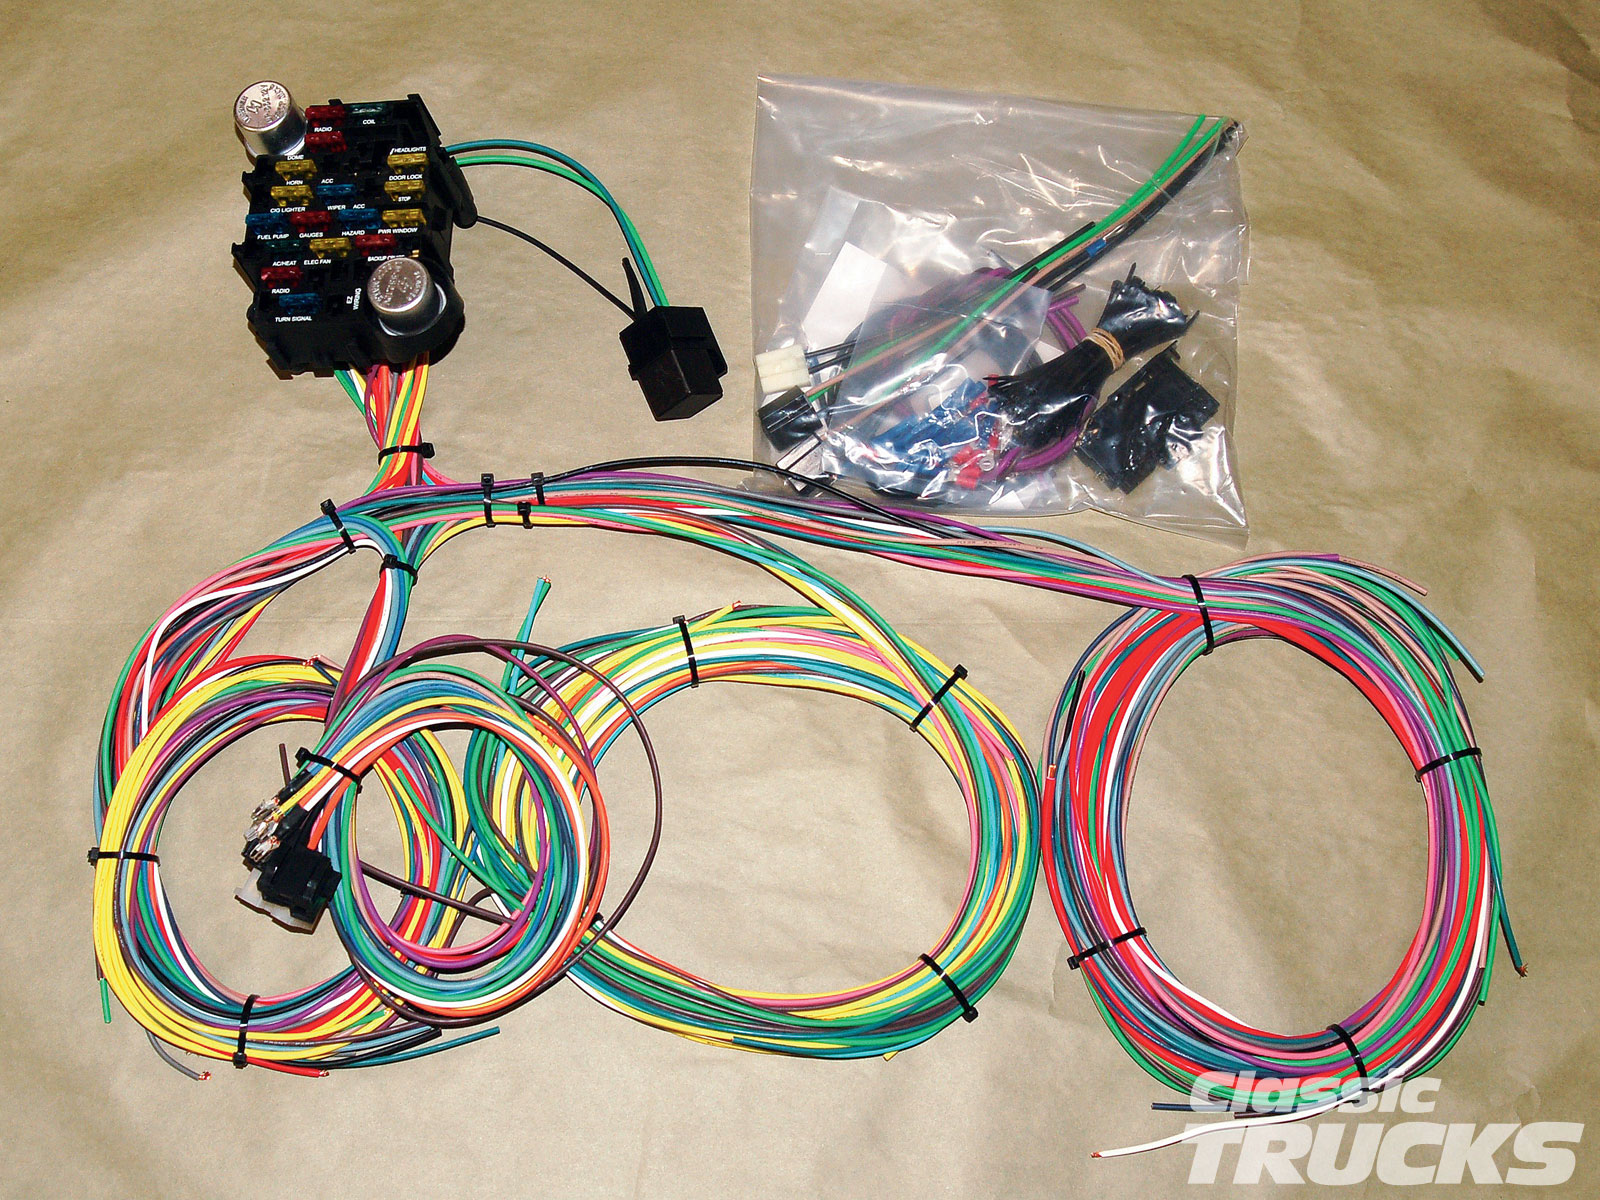 1010clt 02 o aftermarket wiring harness install kit?resize\\\=665%2C499 painless wiring harness australia tamahuproject org universal wiring harness australia at mifinder.co